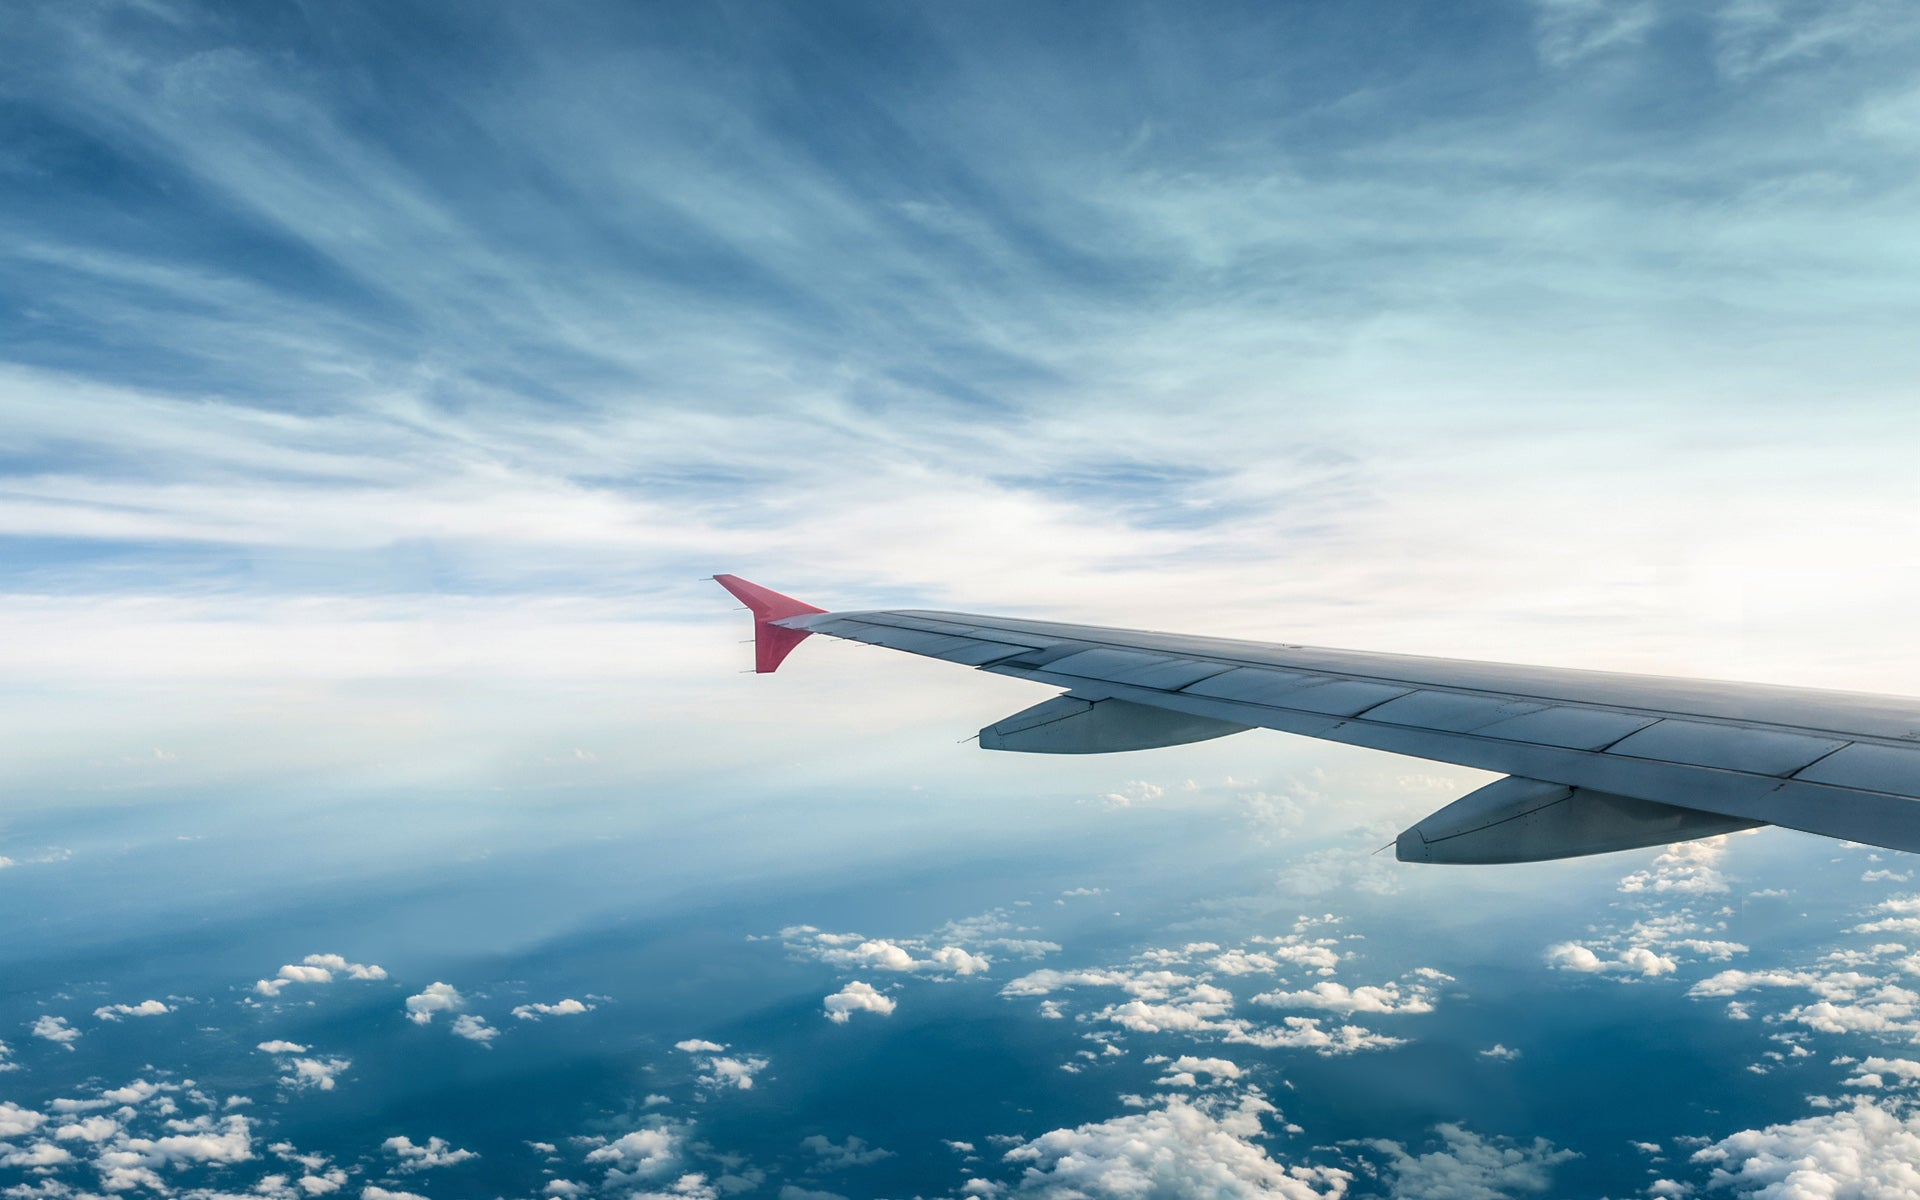 Leave on a Jet Plane with These Travel Wallpapers